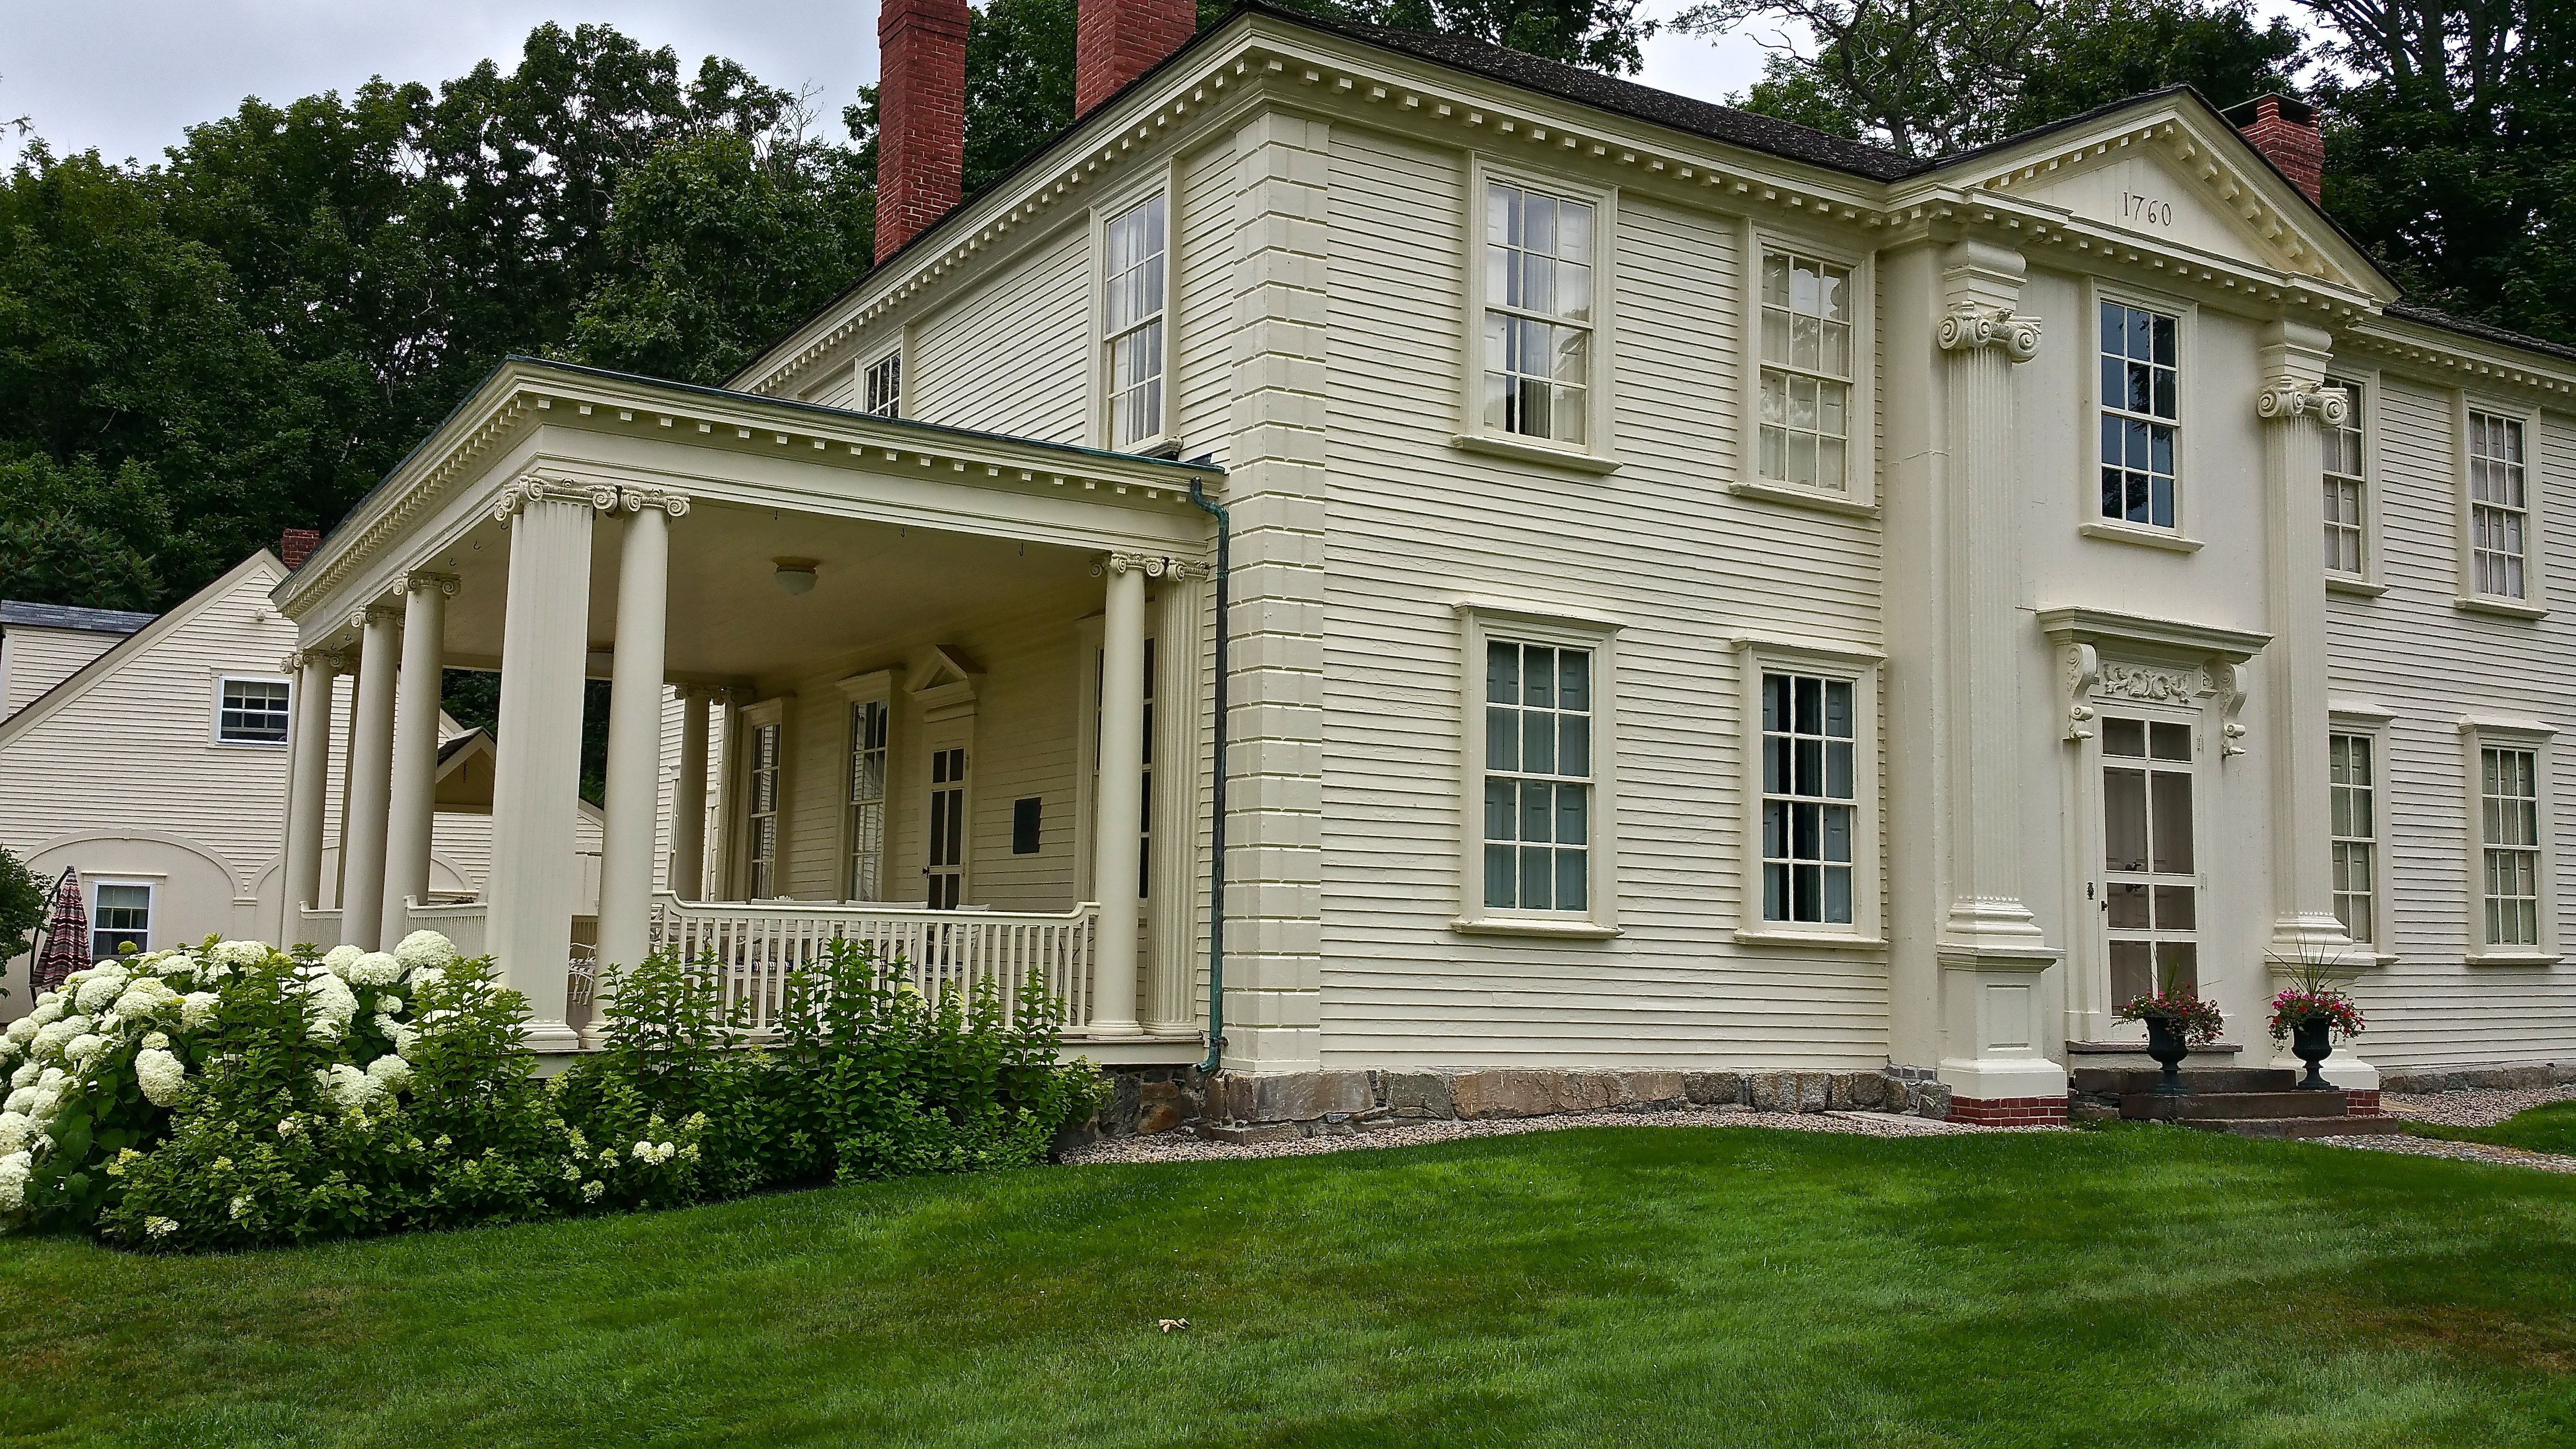 Lady Pepperell House kittery Point ME 1760